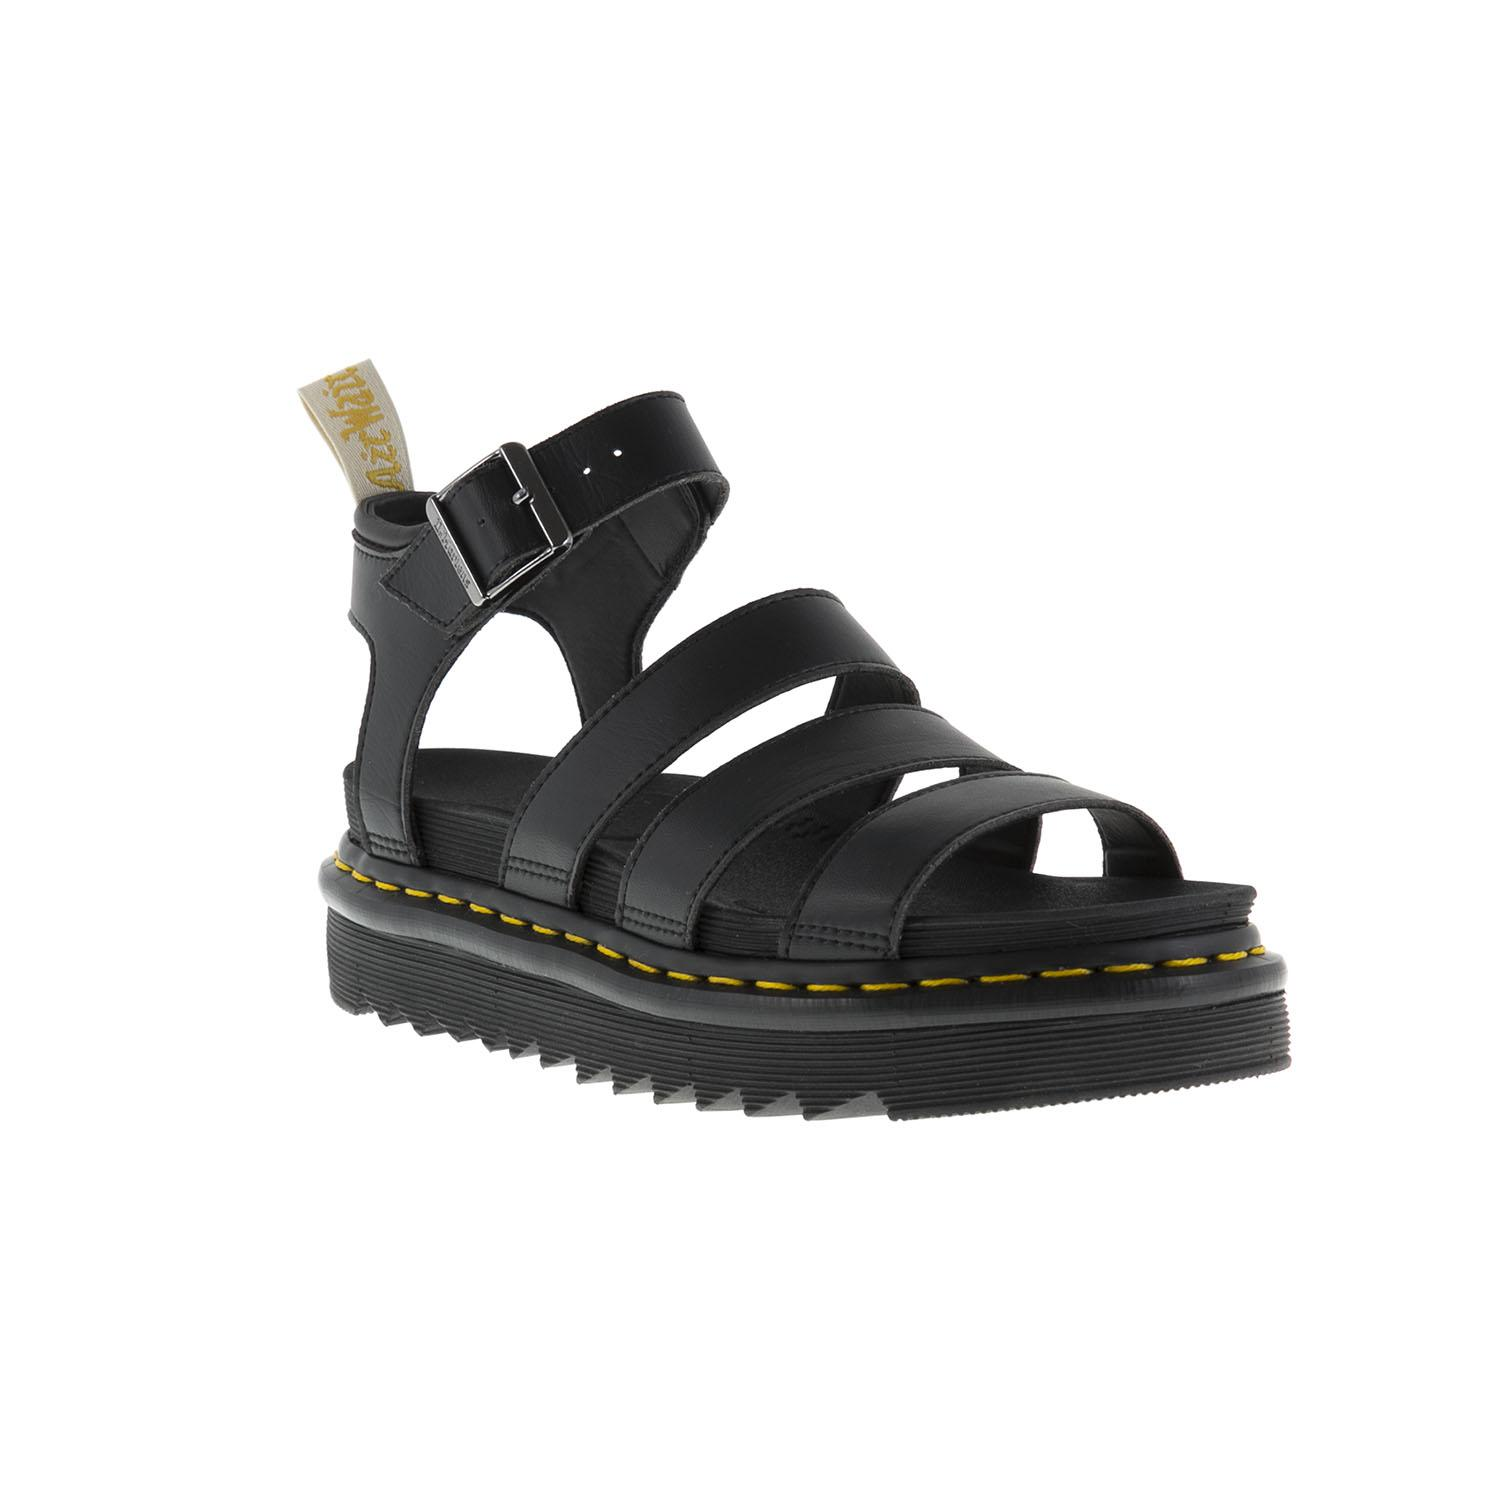 b0384340ef8 Dr. Martens Blaire Sandals in Black - Lyst